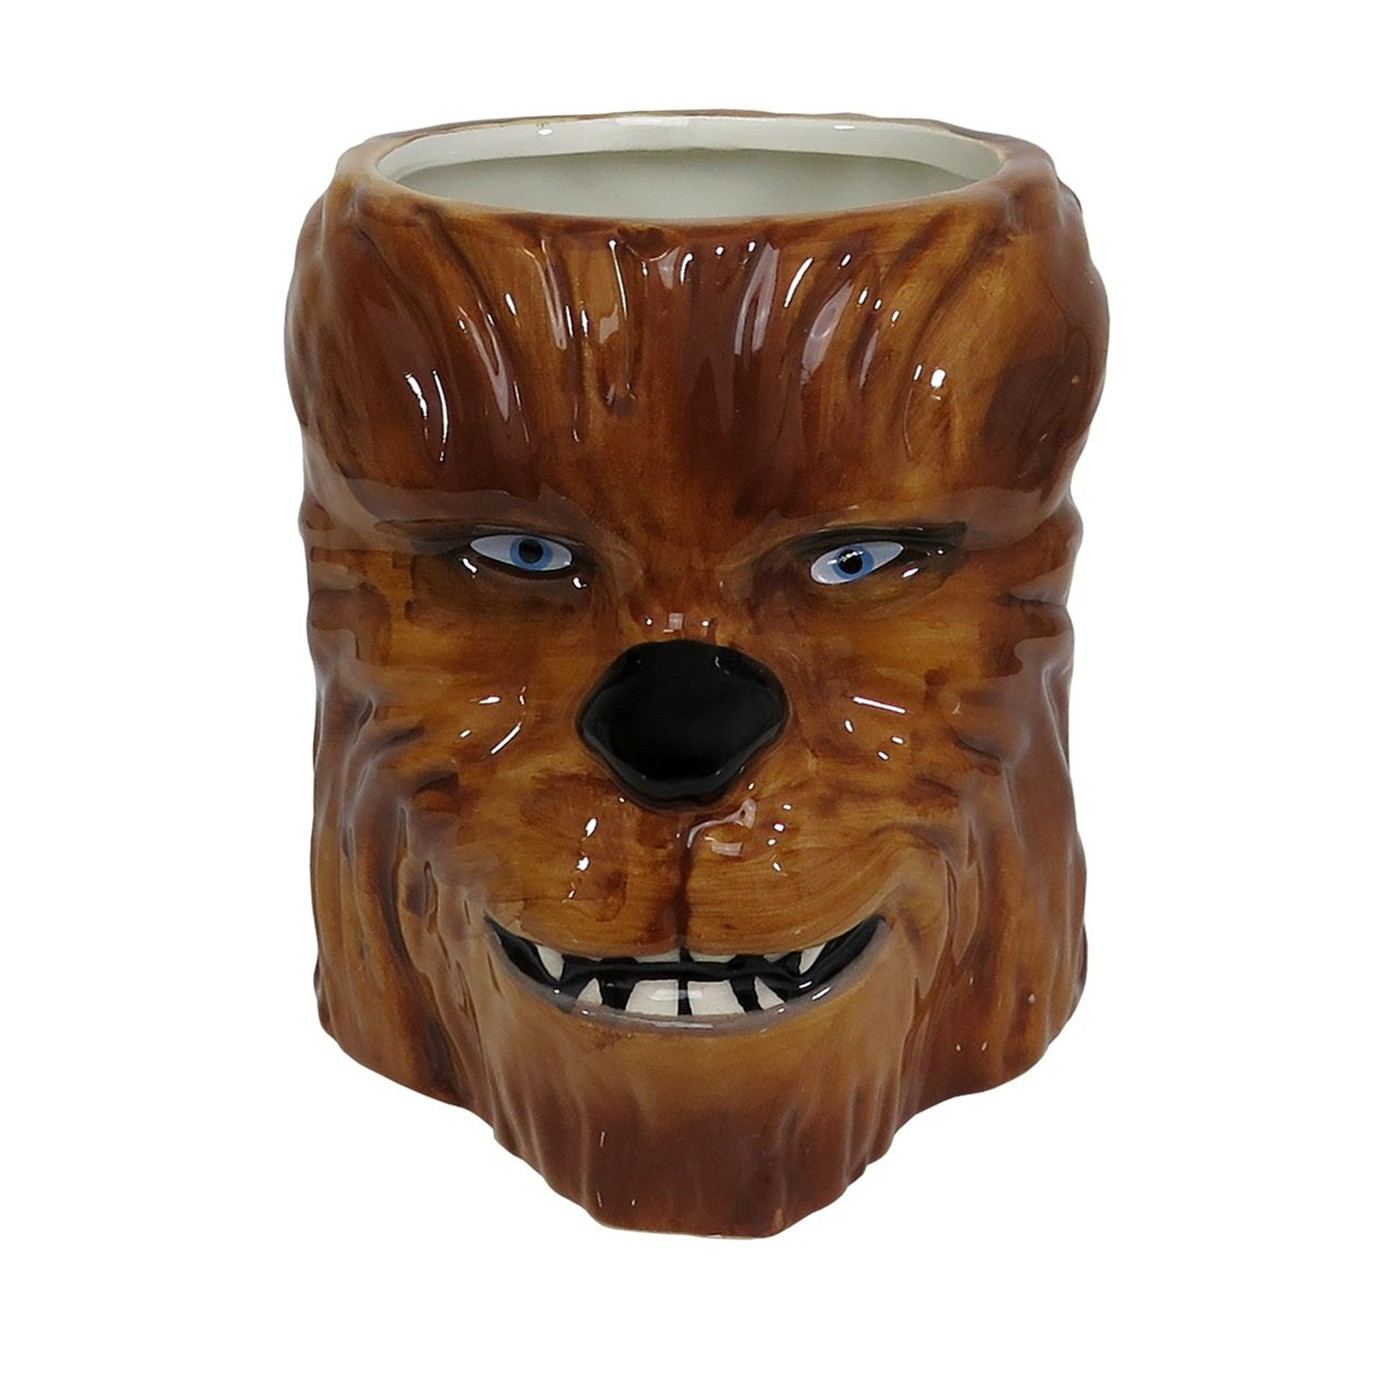 Star Wars Chewbacca Sculpted 11oz Ceramic Mug